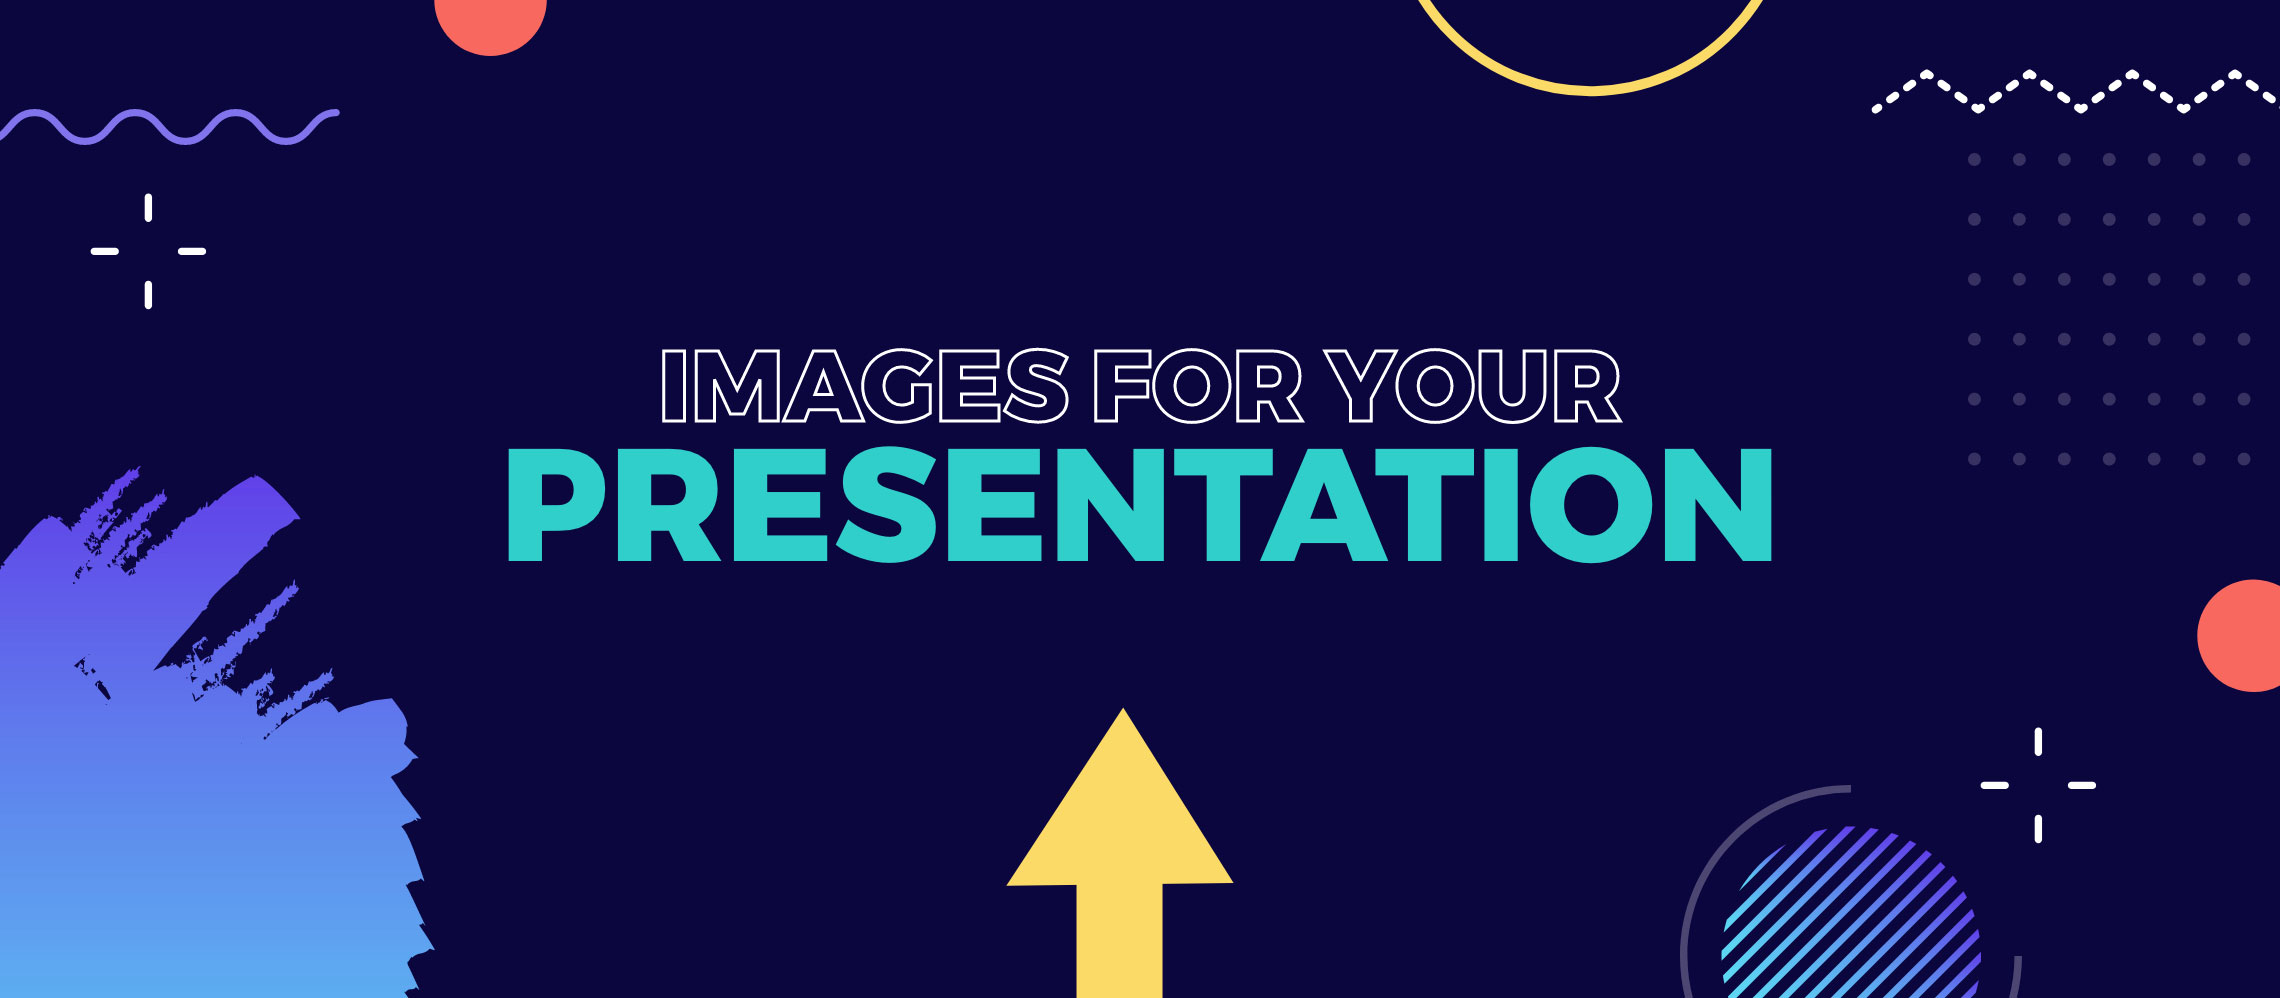 Images for presentations: a simple guide to getting it right